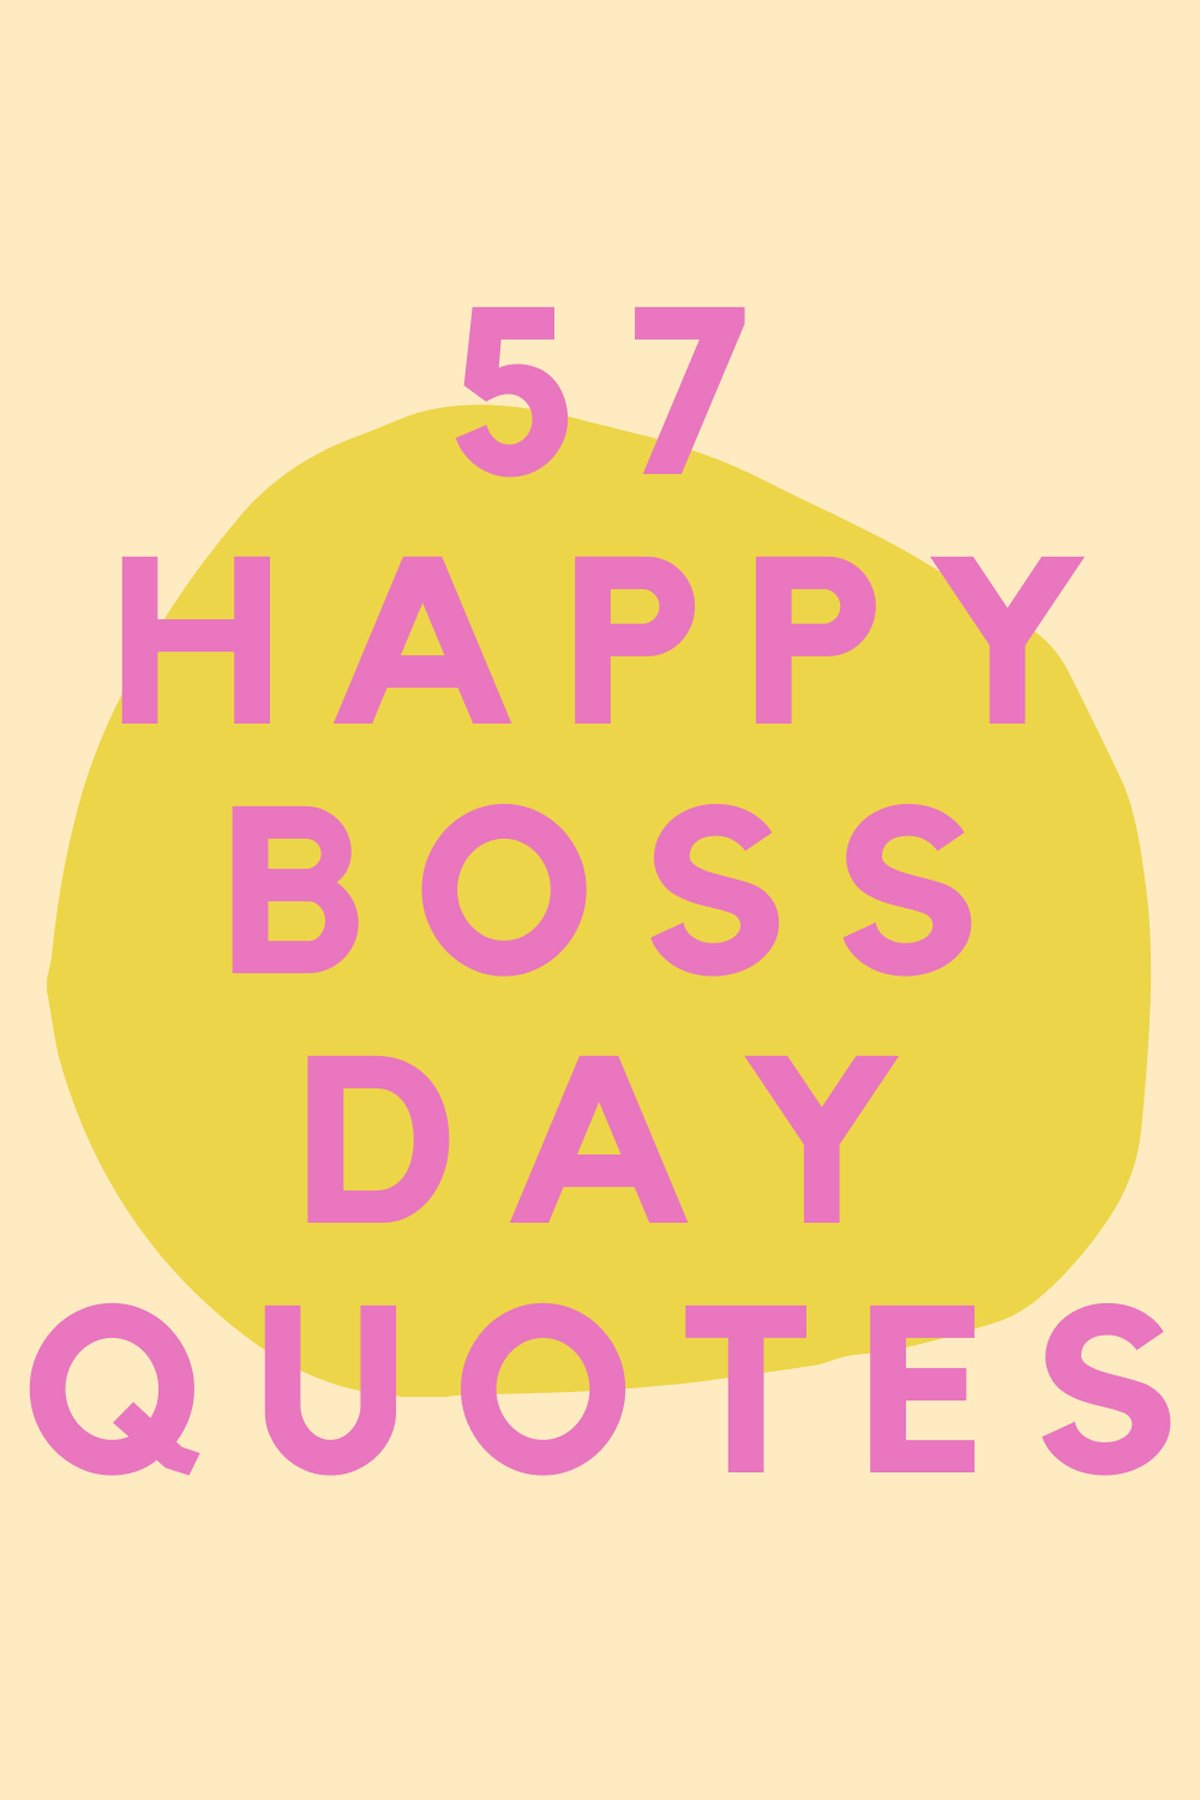 Boss Day Messages for Cards